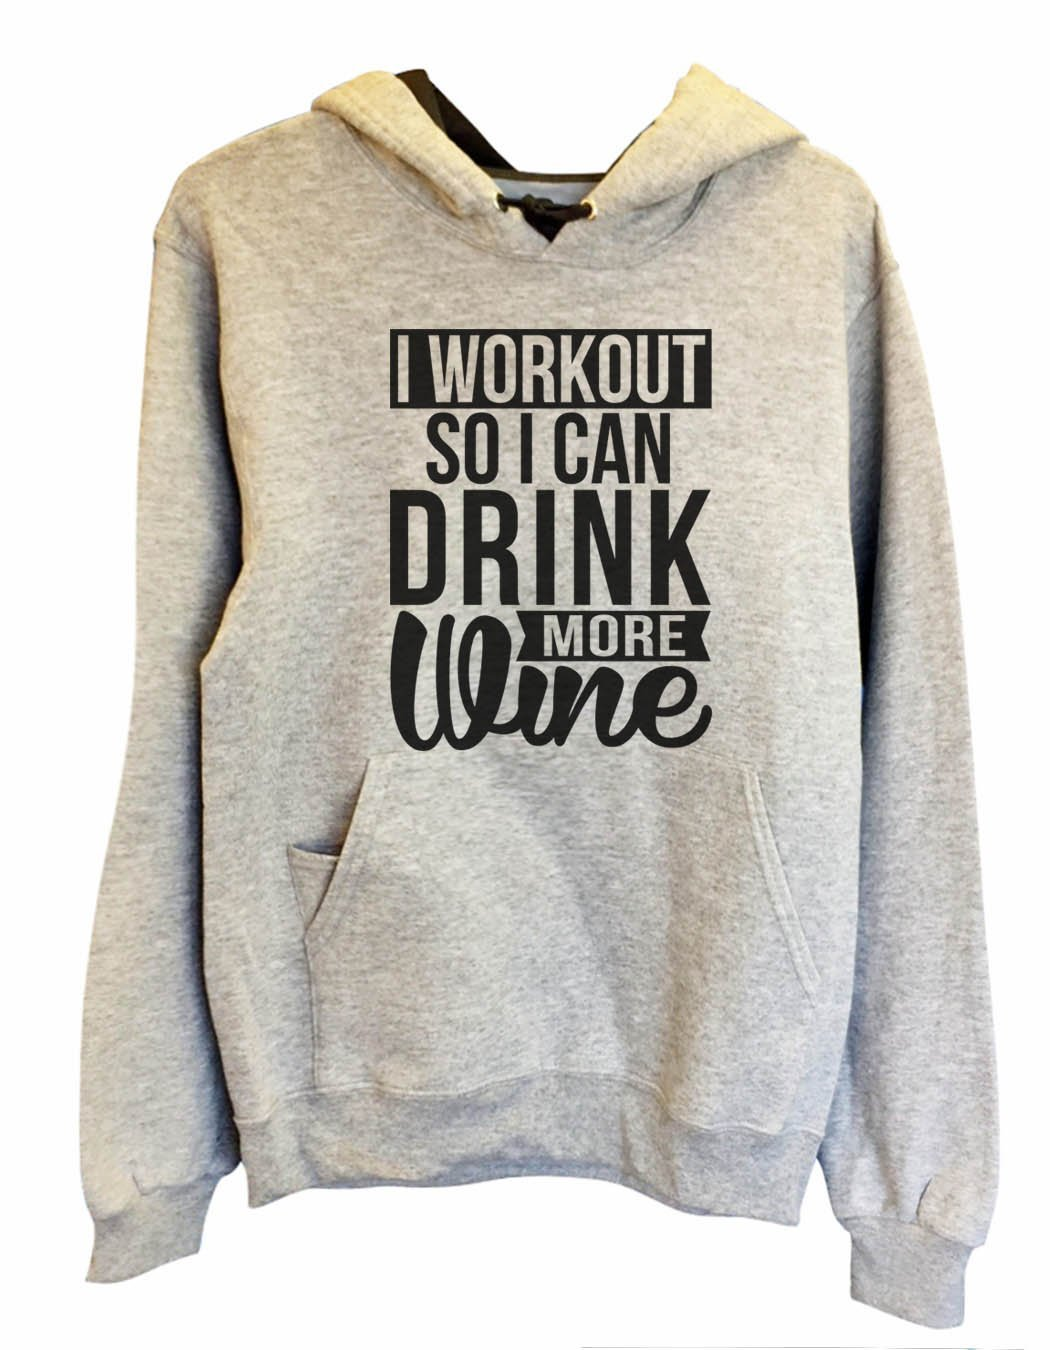 UNISEX HOODIE - I Workout So I Can Drink More Wine - FUNNY MENS AND WOMENS HOODED SWEATSHIRTS - 2133 Funny Shirt Small / Heather Grey